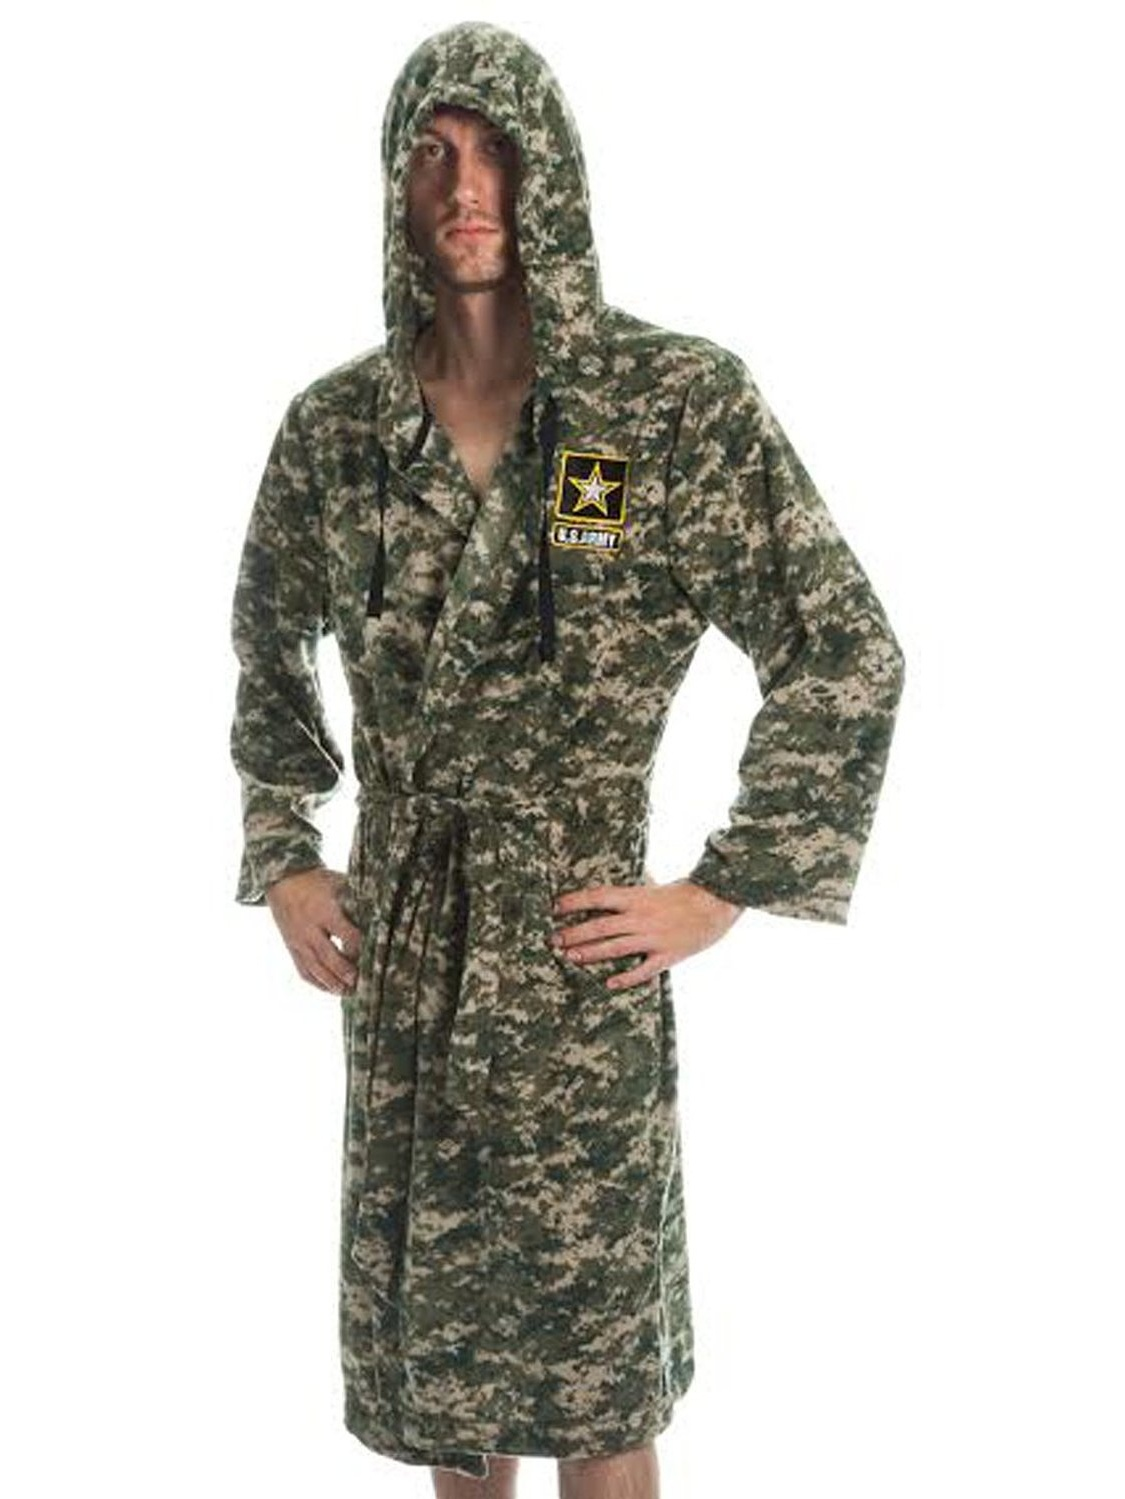 Army - Army Strong Camouflage Fleece Adult Lounge Hooded Bath Robe -  Walmart.com a42056217